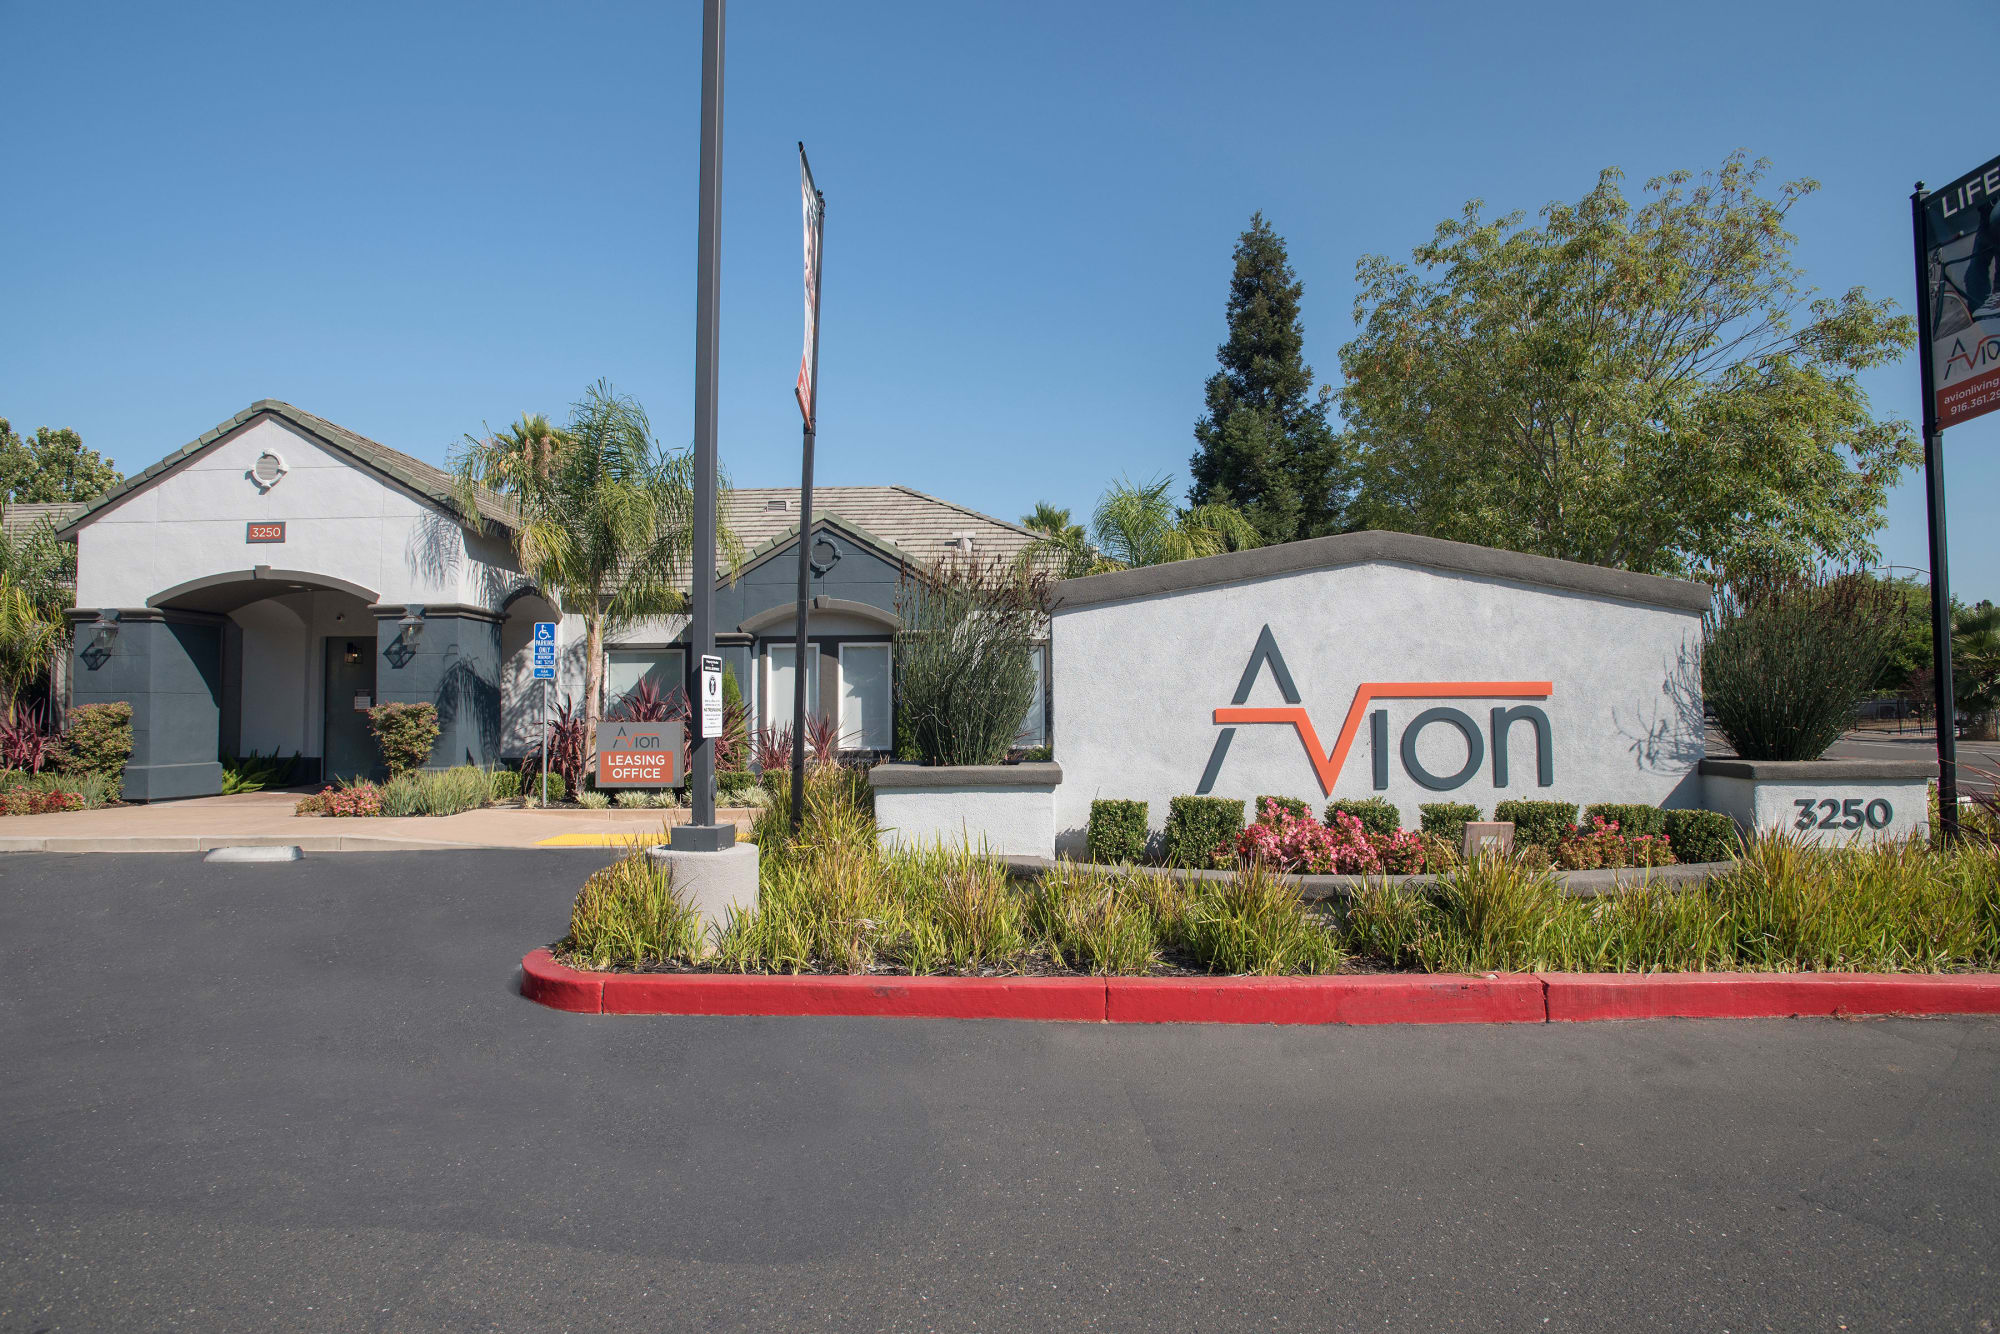 Sign at entry into Avion Apartments in Rancho Cordova, California